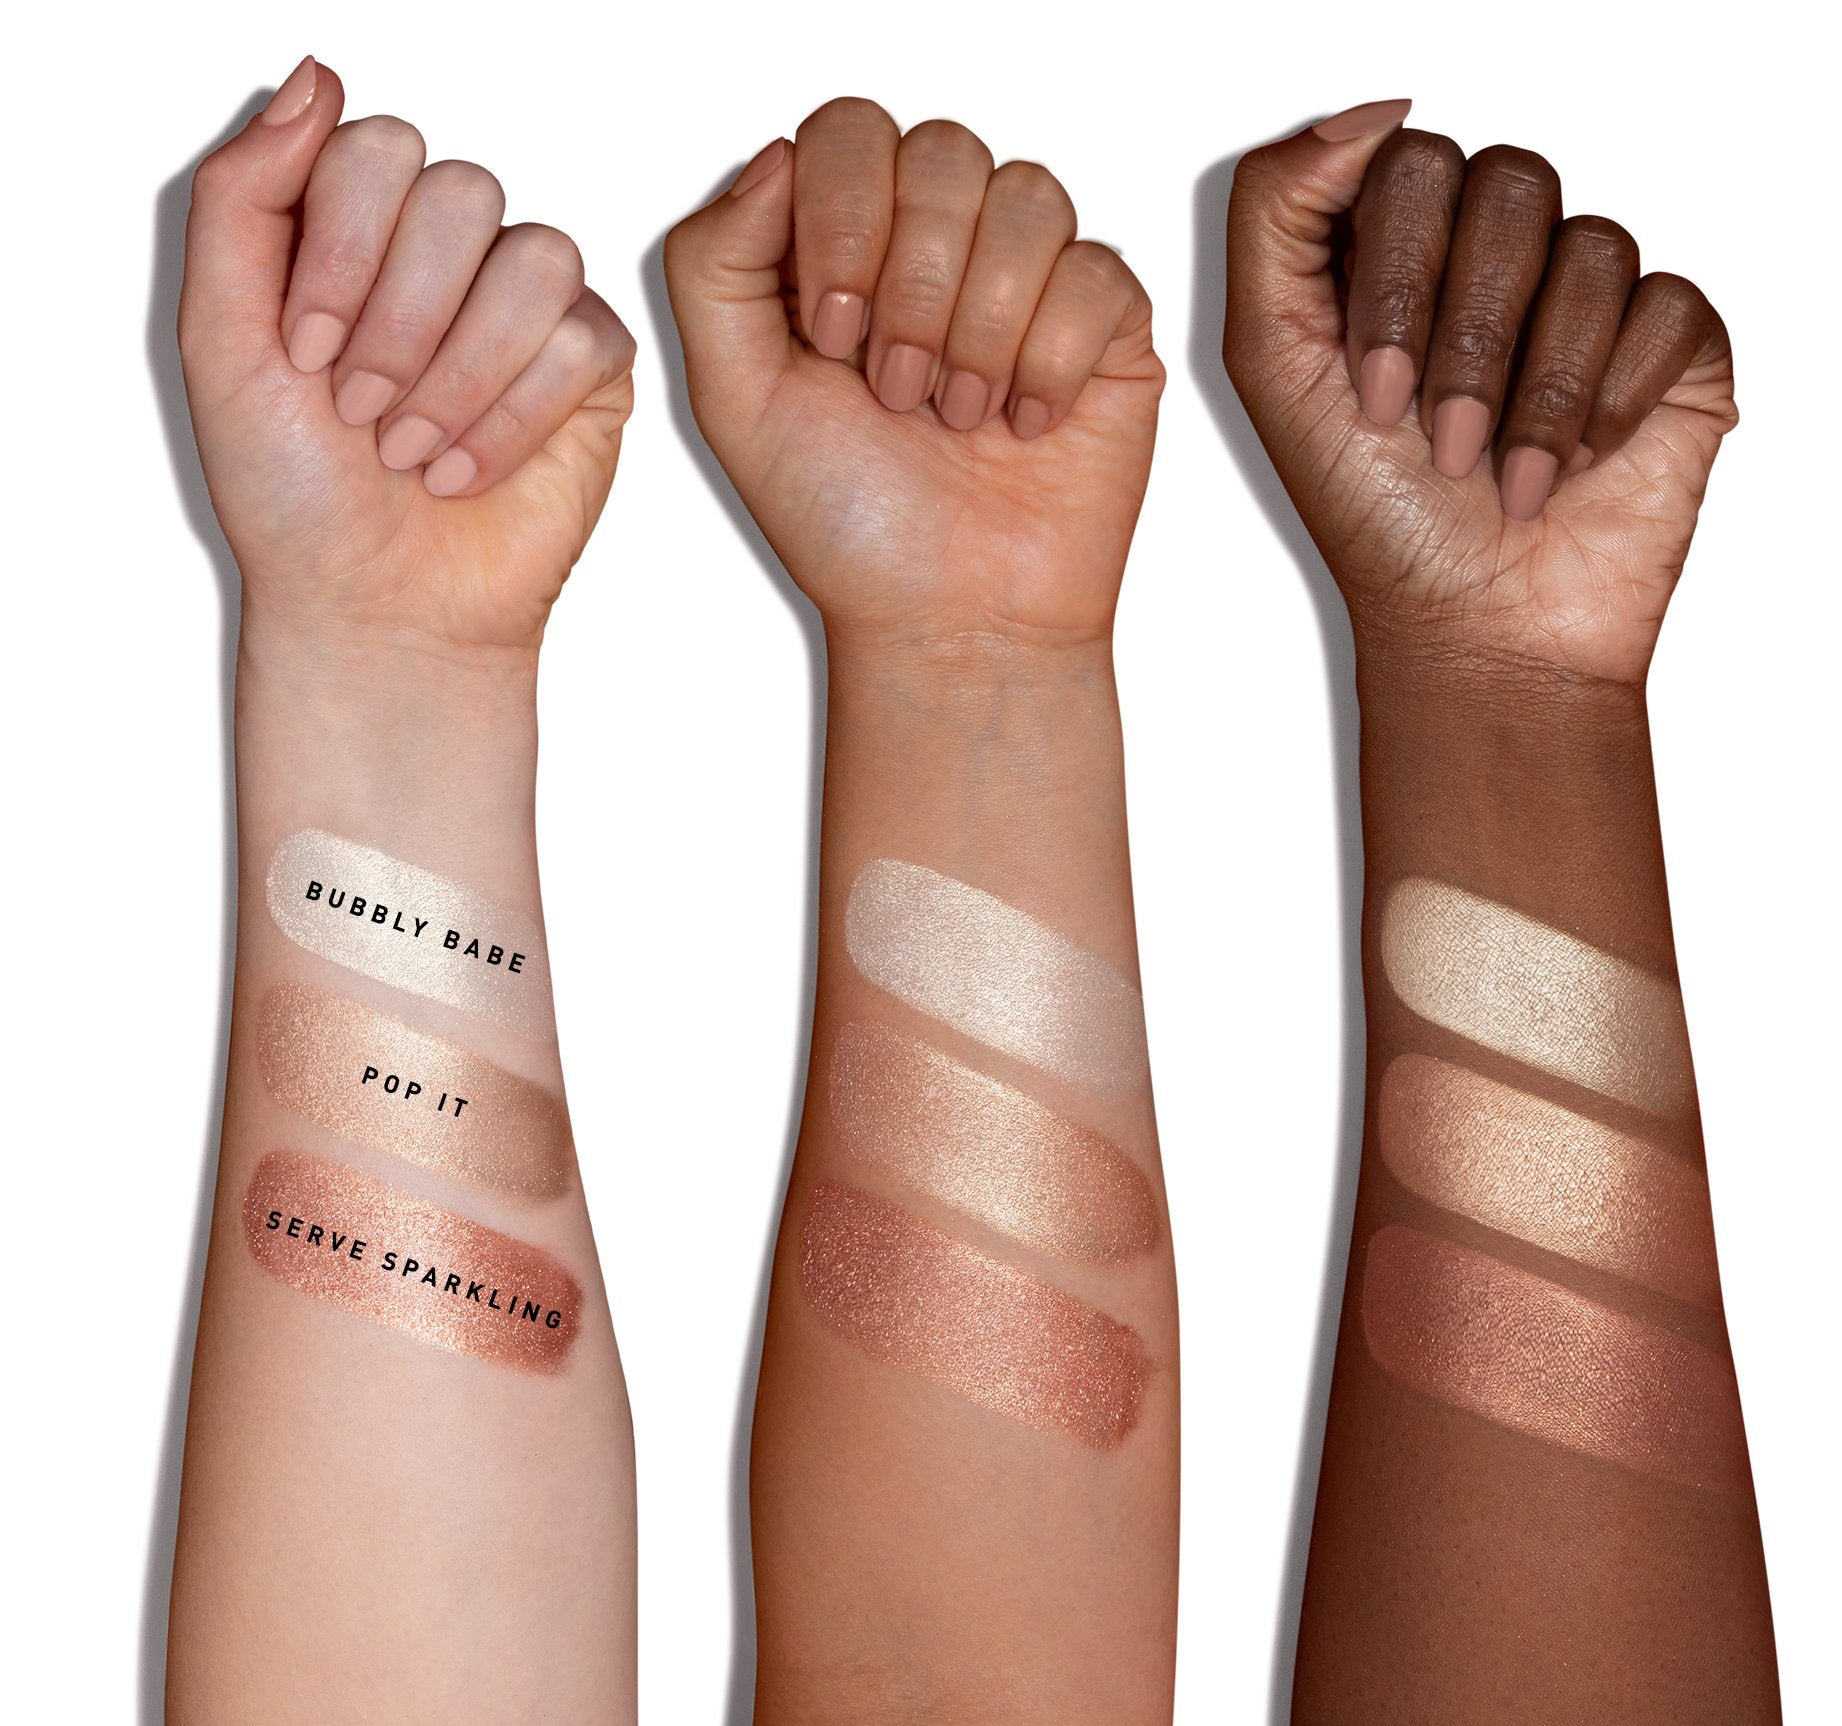 COCA-COLA X MORPHE GLOWING PLACES LOOSE HIGHLIGHTER - SERVE SPARKLING ARM SWATCHES, view larger image